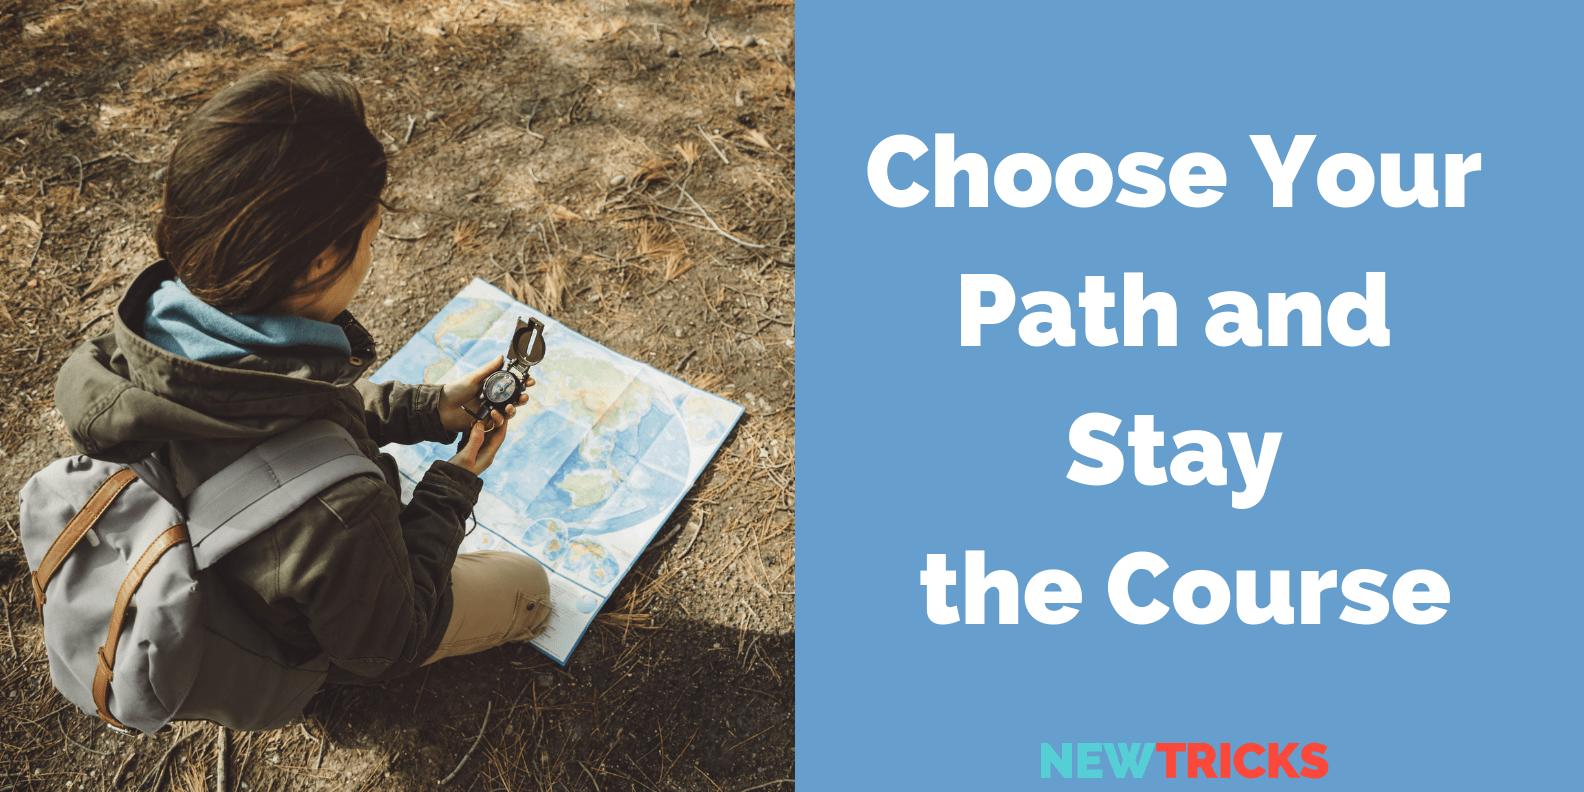 Choose Your Path and Stay the Course